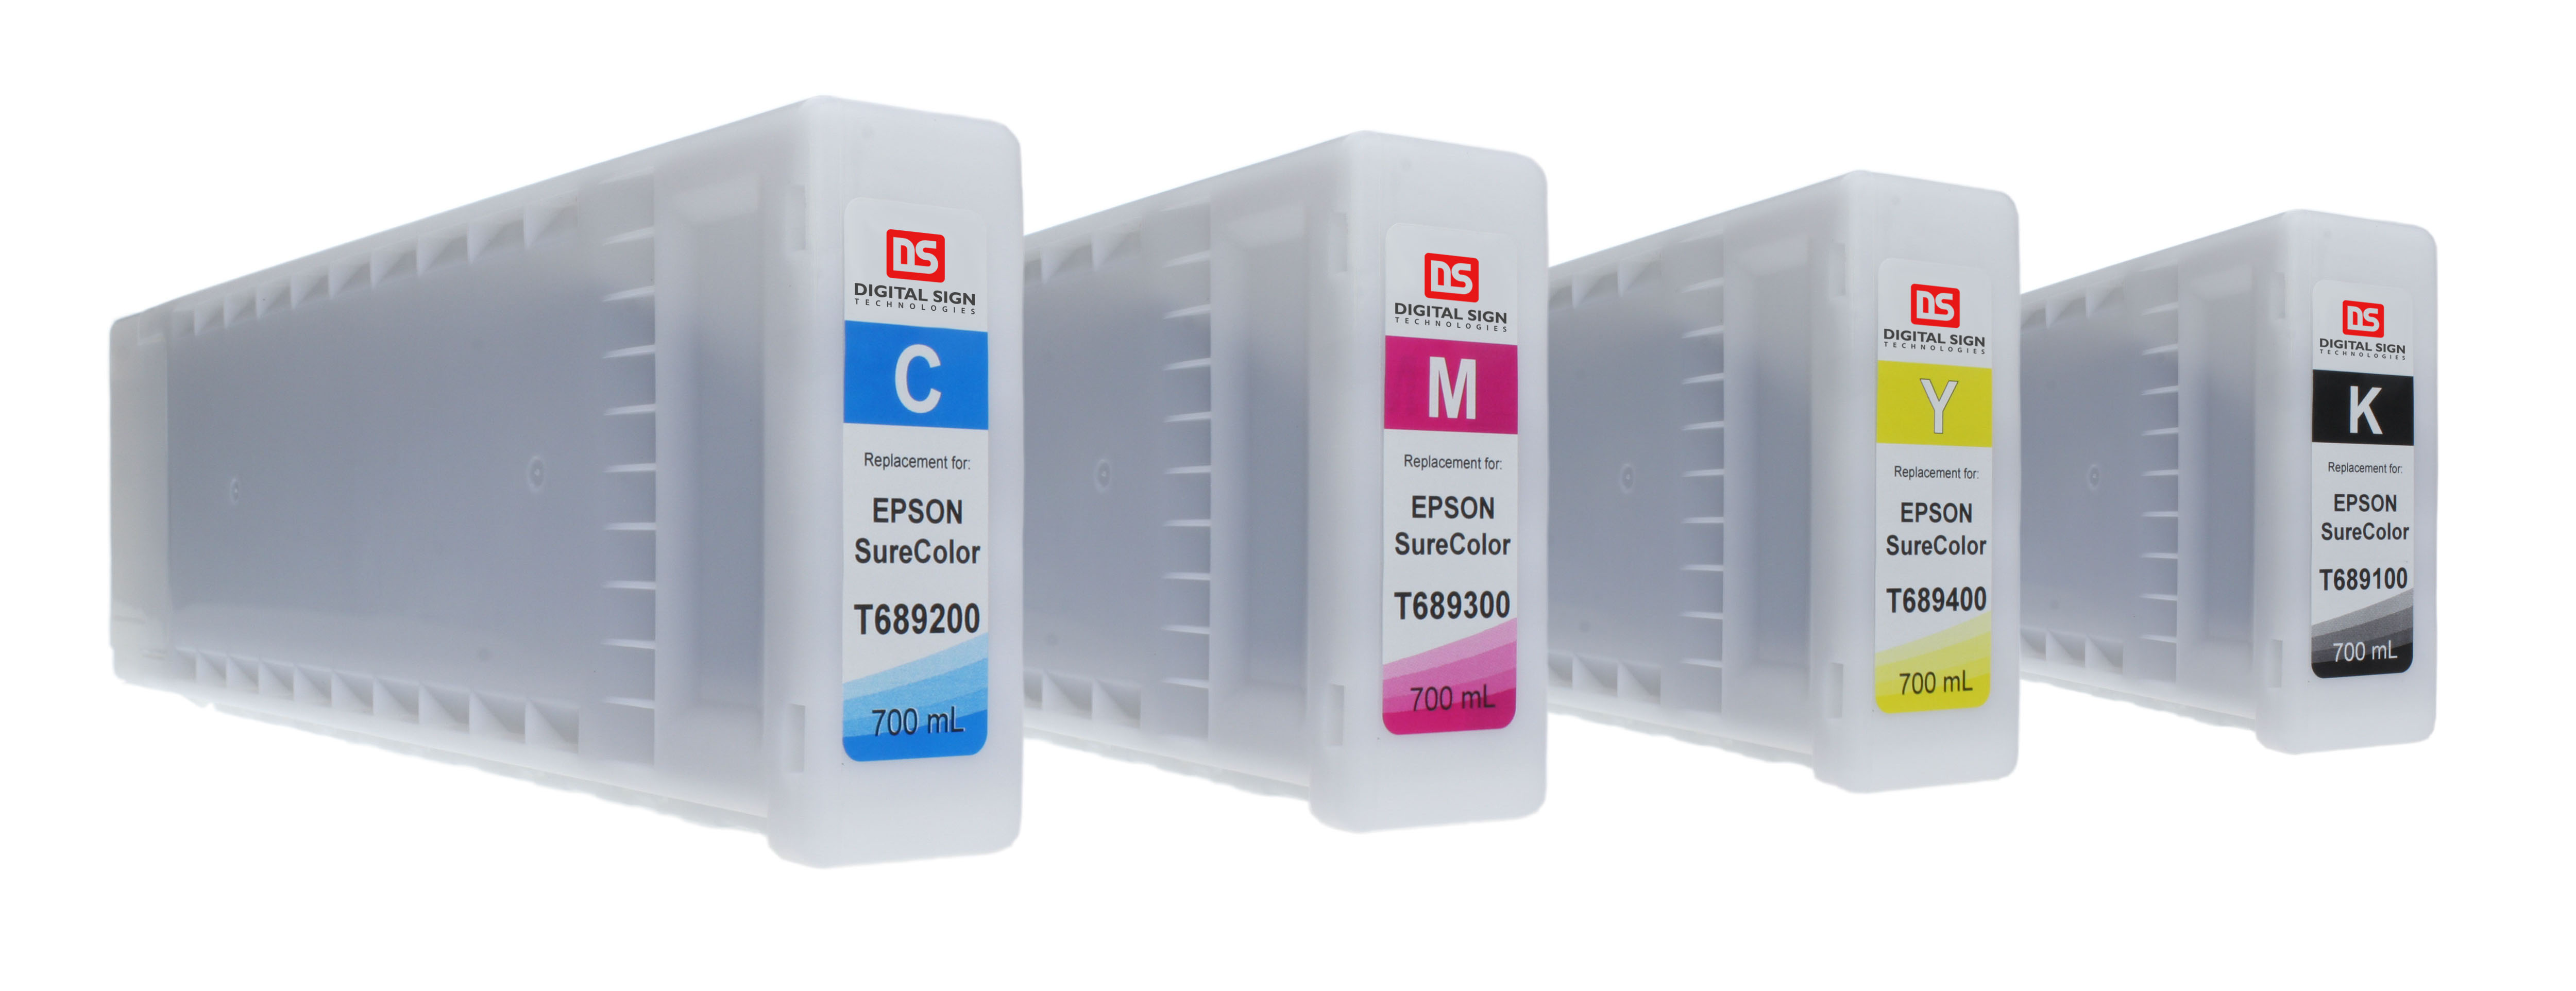 Epson UltraChrome GS2 Ink Cartridges by DST